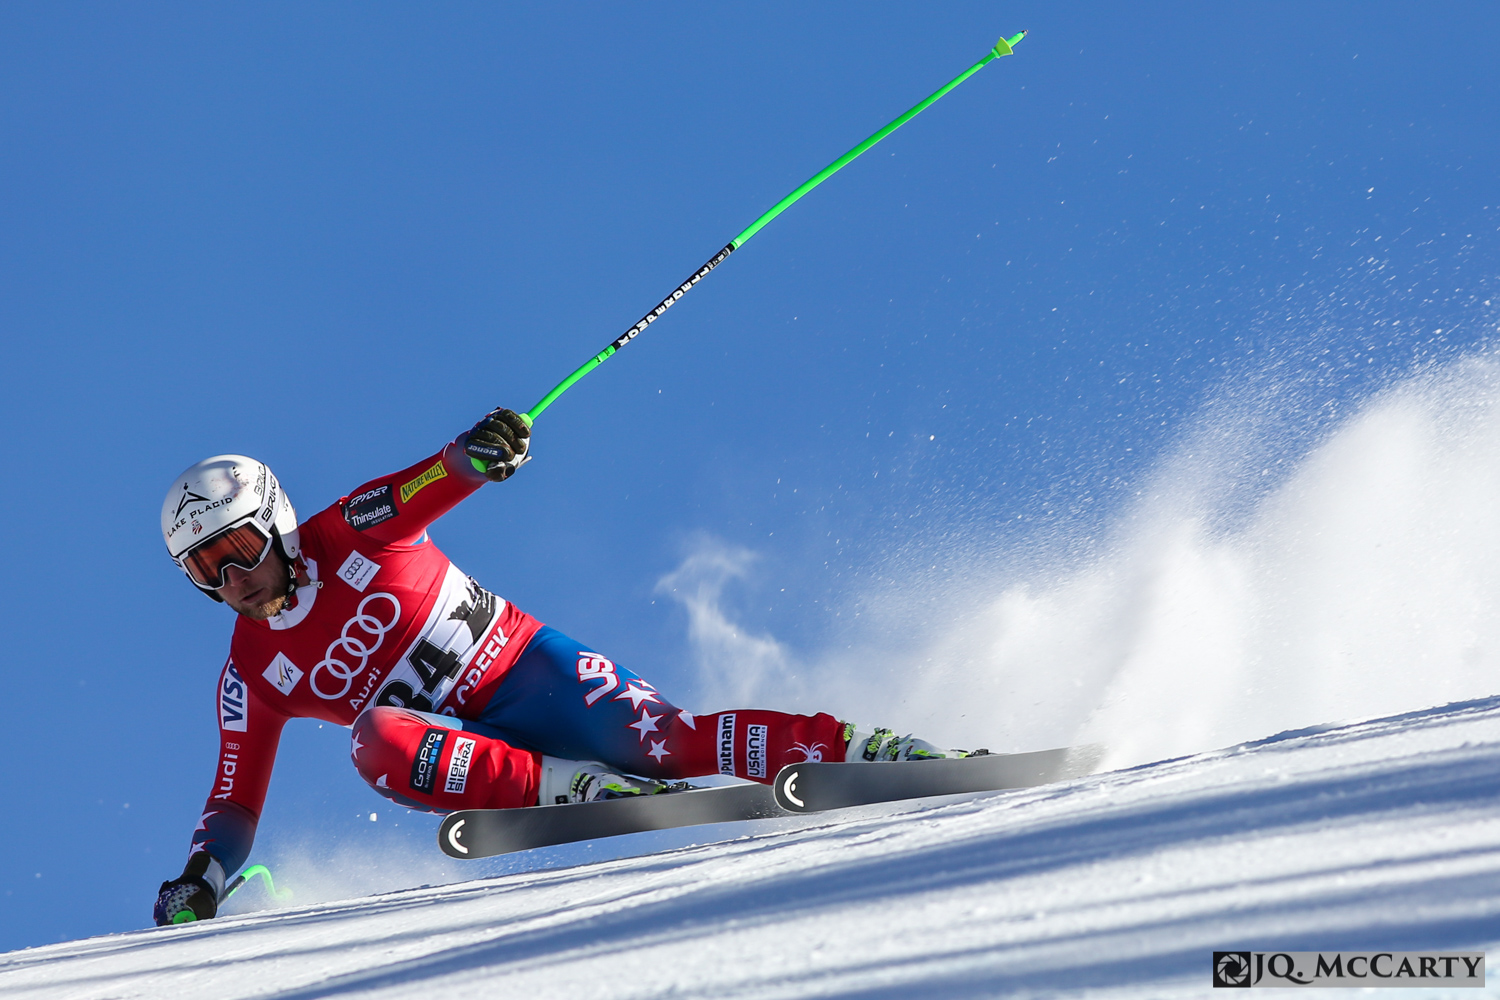 American Andrew Weibrecht gets sideways while negotiating a turn into the brink section of the Birds of Prey World Cup downhill race Friday in Beaver Creek. Weibrecht finished 5th with a time of 1 minute, 43.31 seconds.